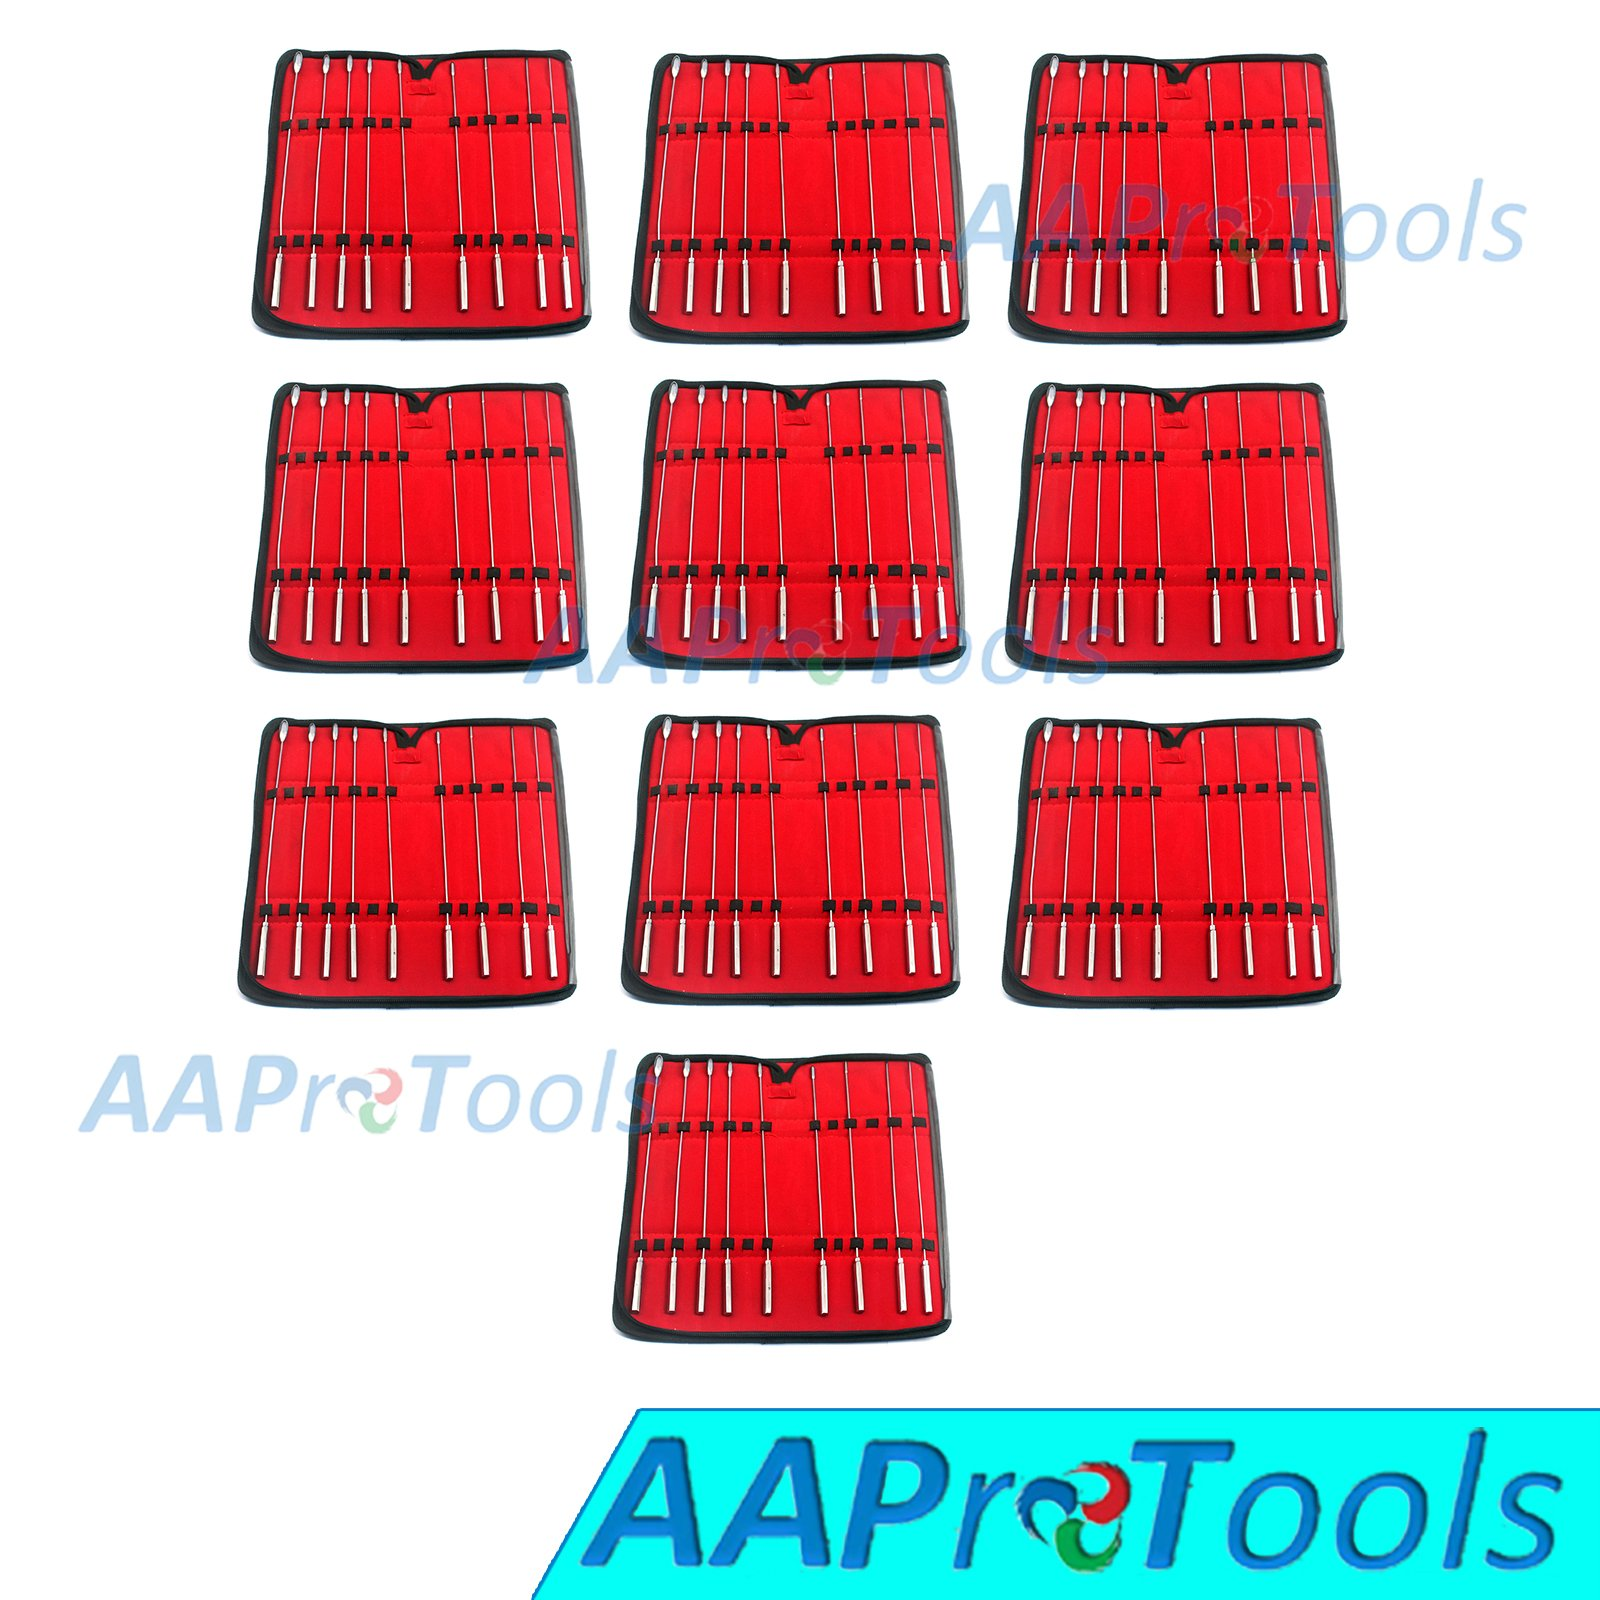 AAPROTOOLS 10 KITS BAKES ROSEBUD SOUNDS DILATOR SET OF 9 PIECES STAINLESS STEEL A+ QUALITY by AAPROTOOLS